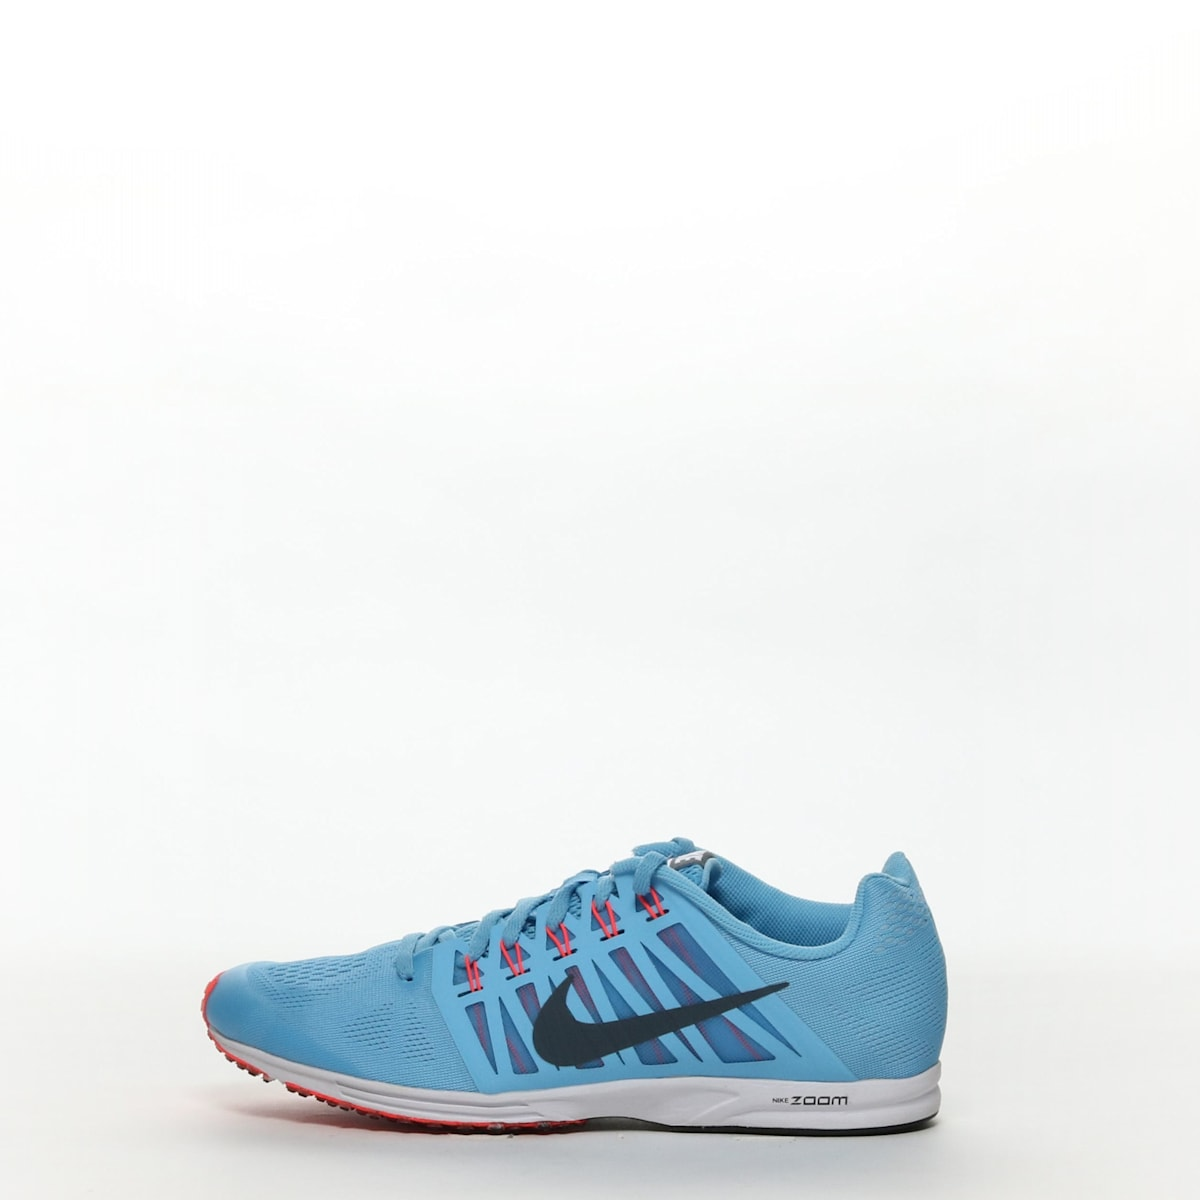 c65b41c3189f7 NIKE AIR ZOOM SPEED RACER 6 - FBBLUE BLUEFO – Resku